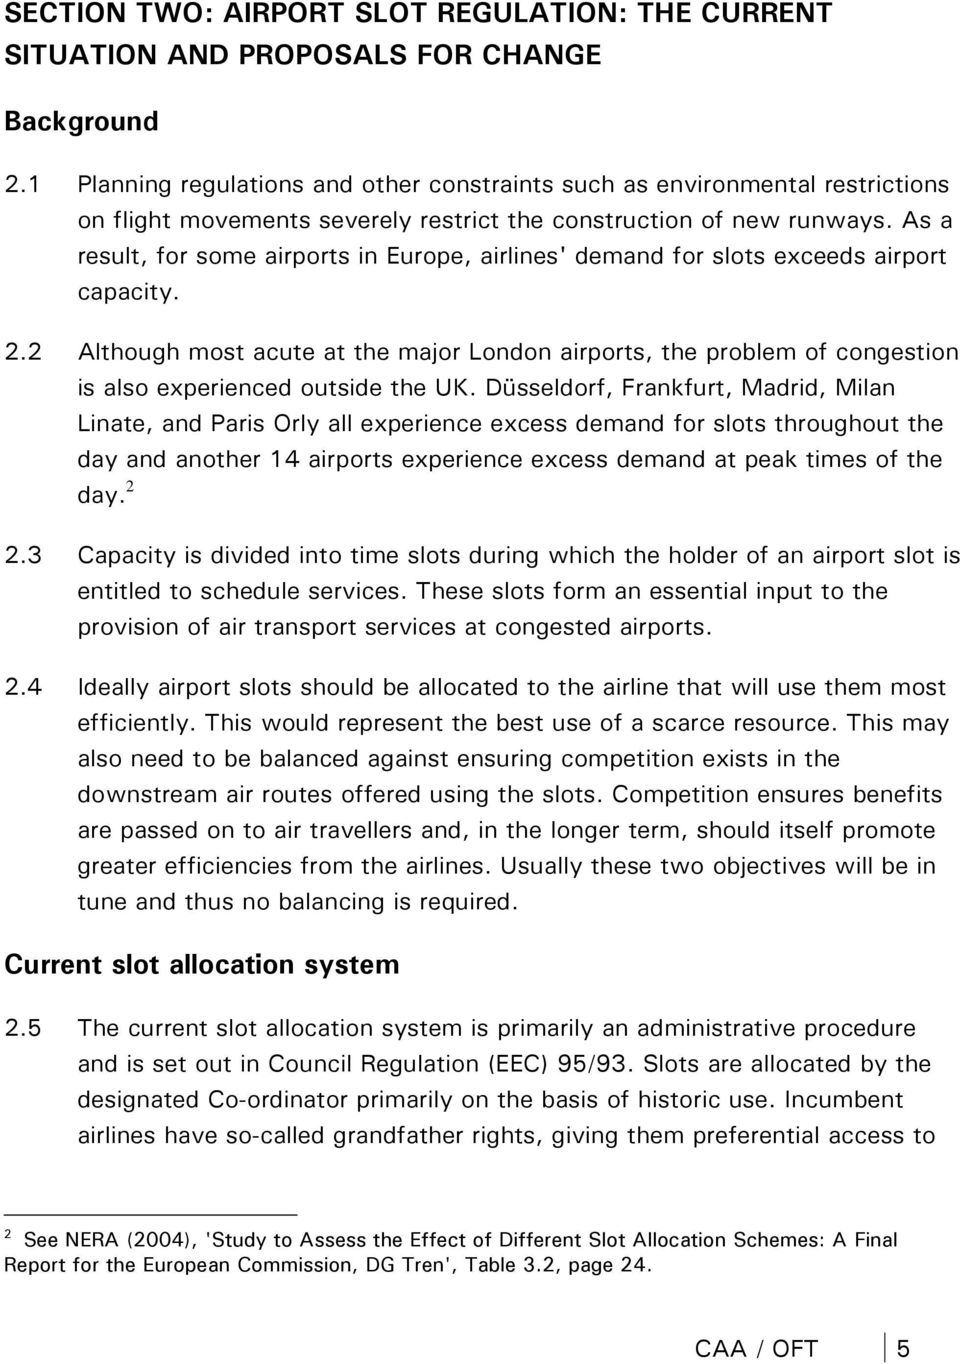 As a result, for some airports in Europe, airlines' demand for slots exceeds airport capacity. 2.